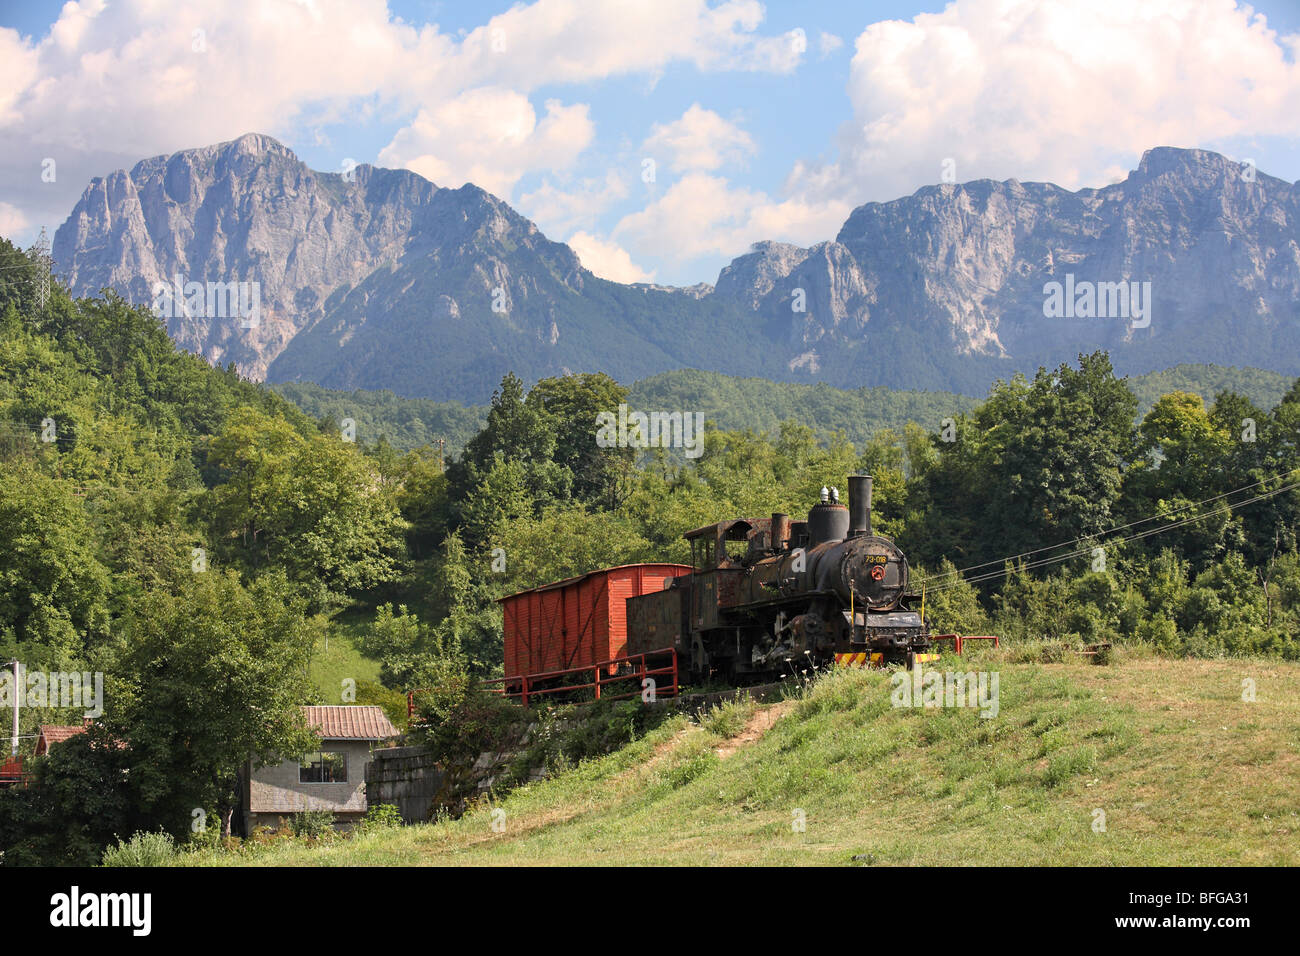 Bosnia and Herzegovina; Jablanica district. Old steam locomotive displayed in outdoor museum. In background Mountain - Stock Image